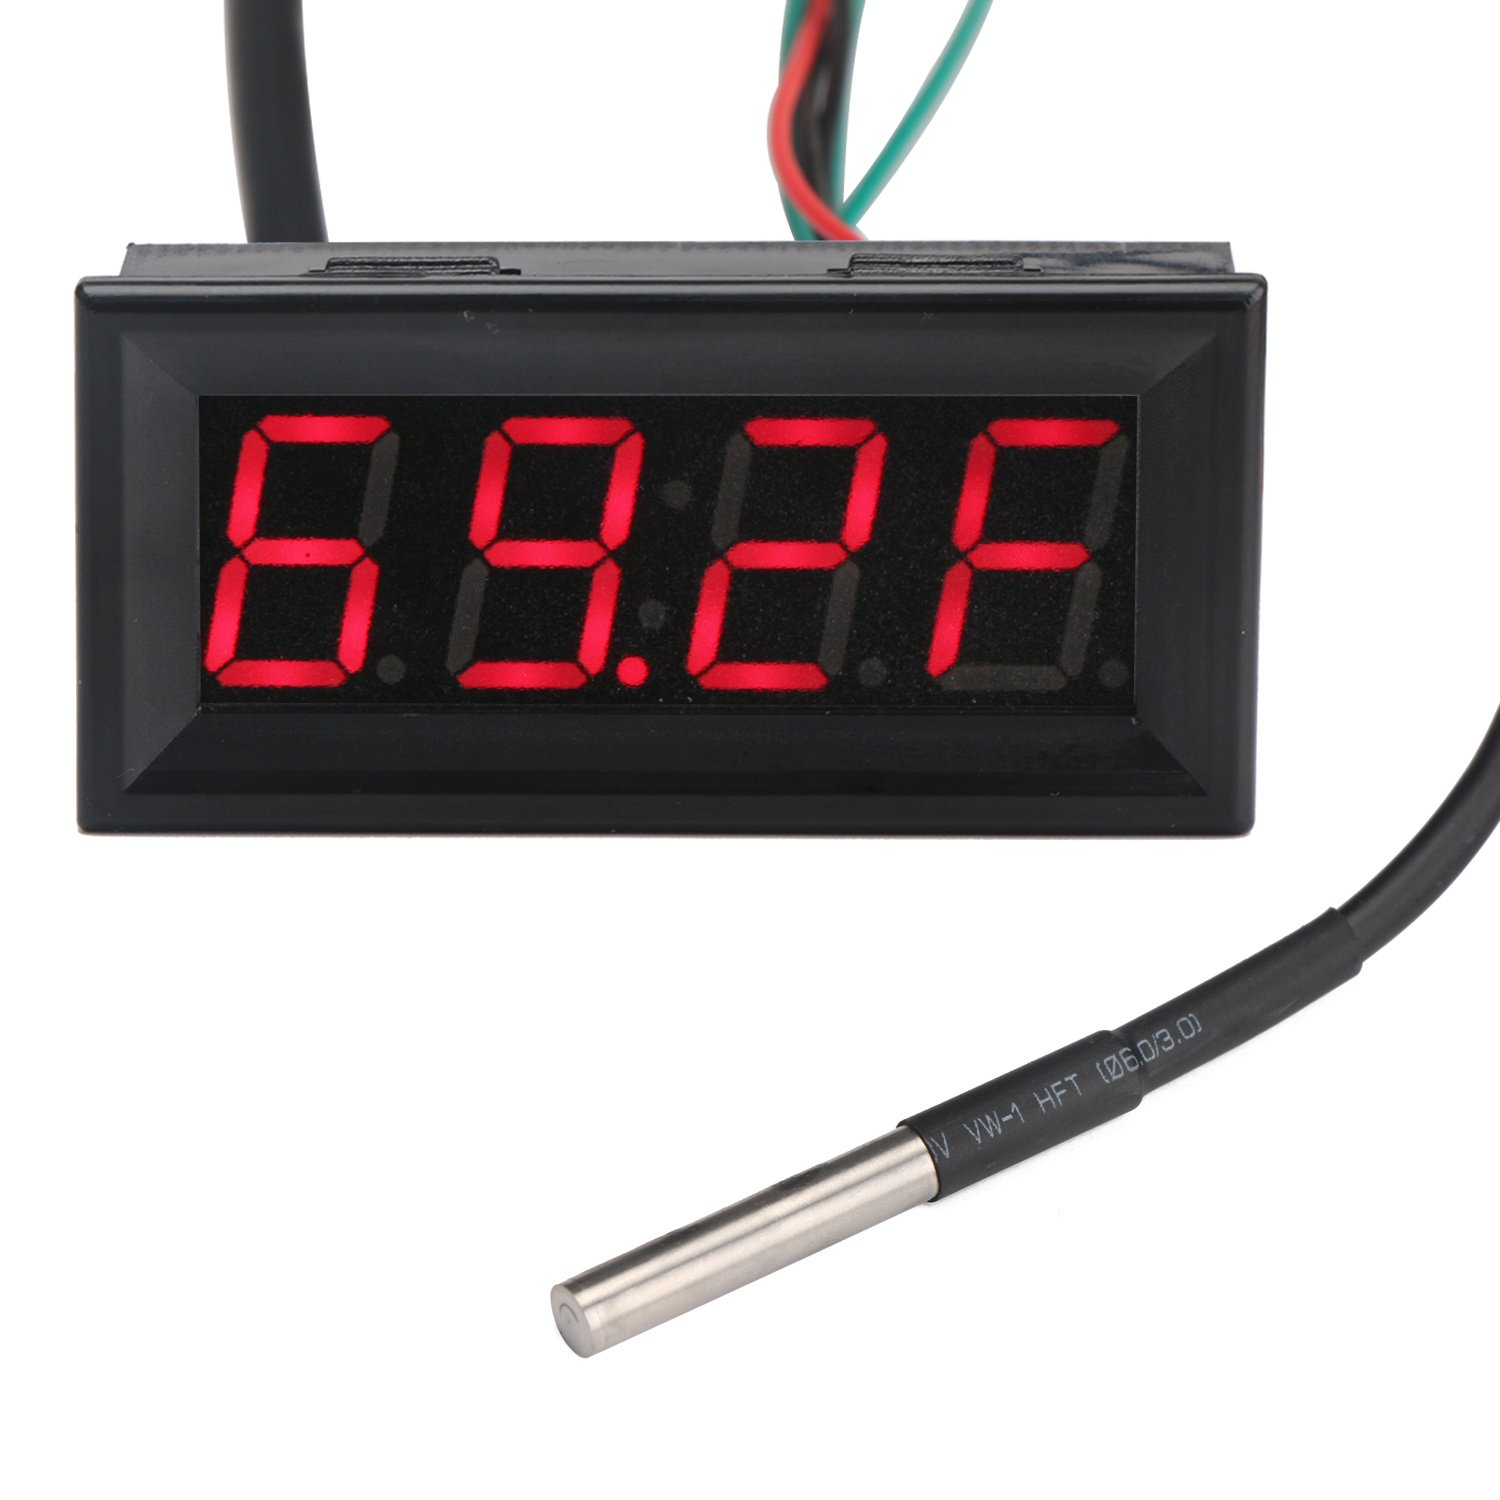 Drok Fahrenheit Scale 056 Dc 12v Digital Car Clock Thermometer Wiring Diagram Voltmeter 3in1 Red Led Auto Gauges Ds18b20 Probe Voltage Testers Industrial